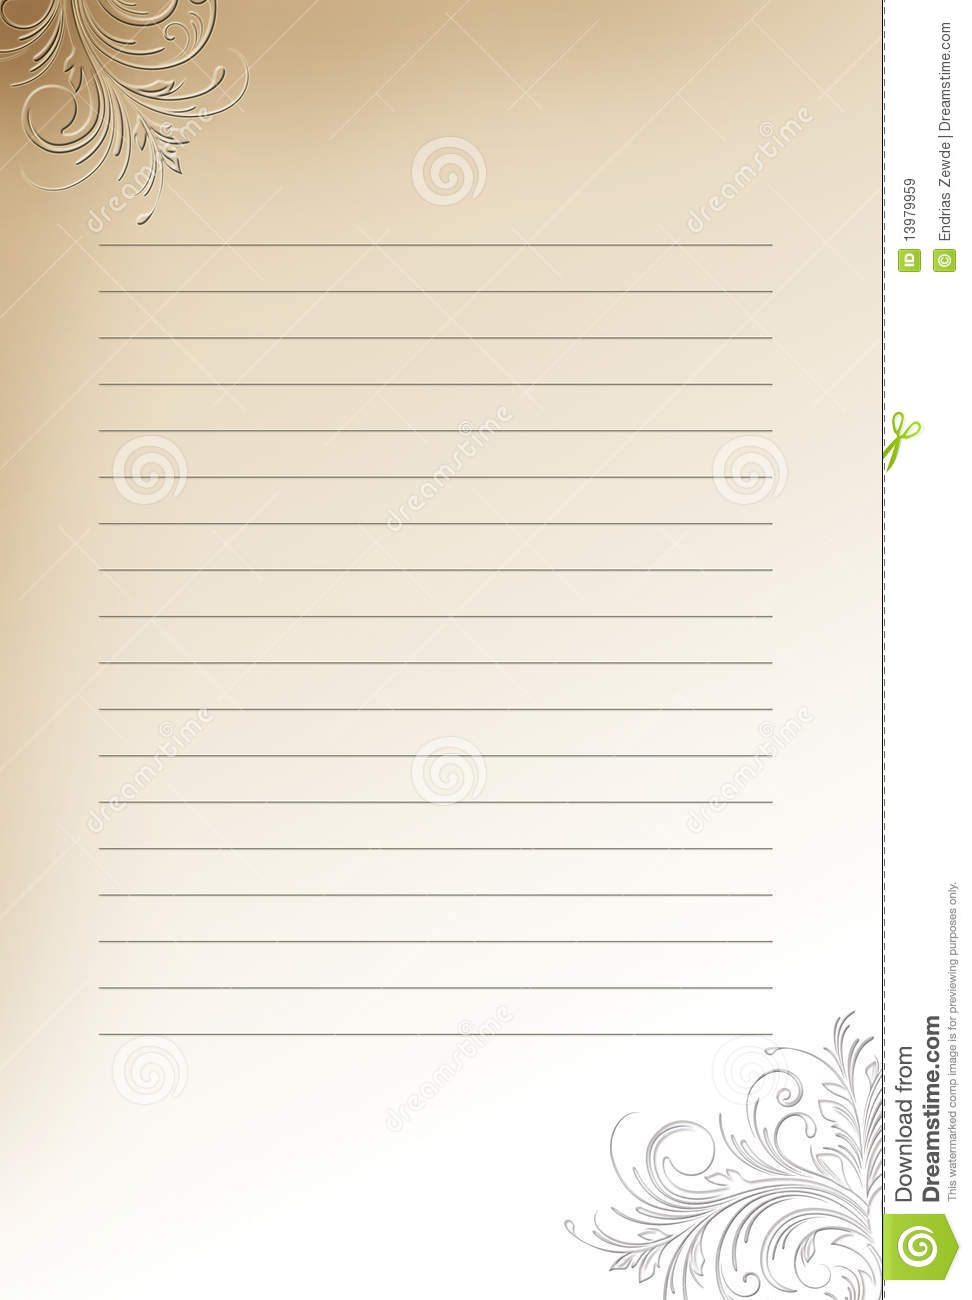 Letter Paper Background Royalty Free Stock Images.